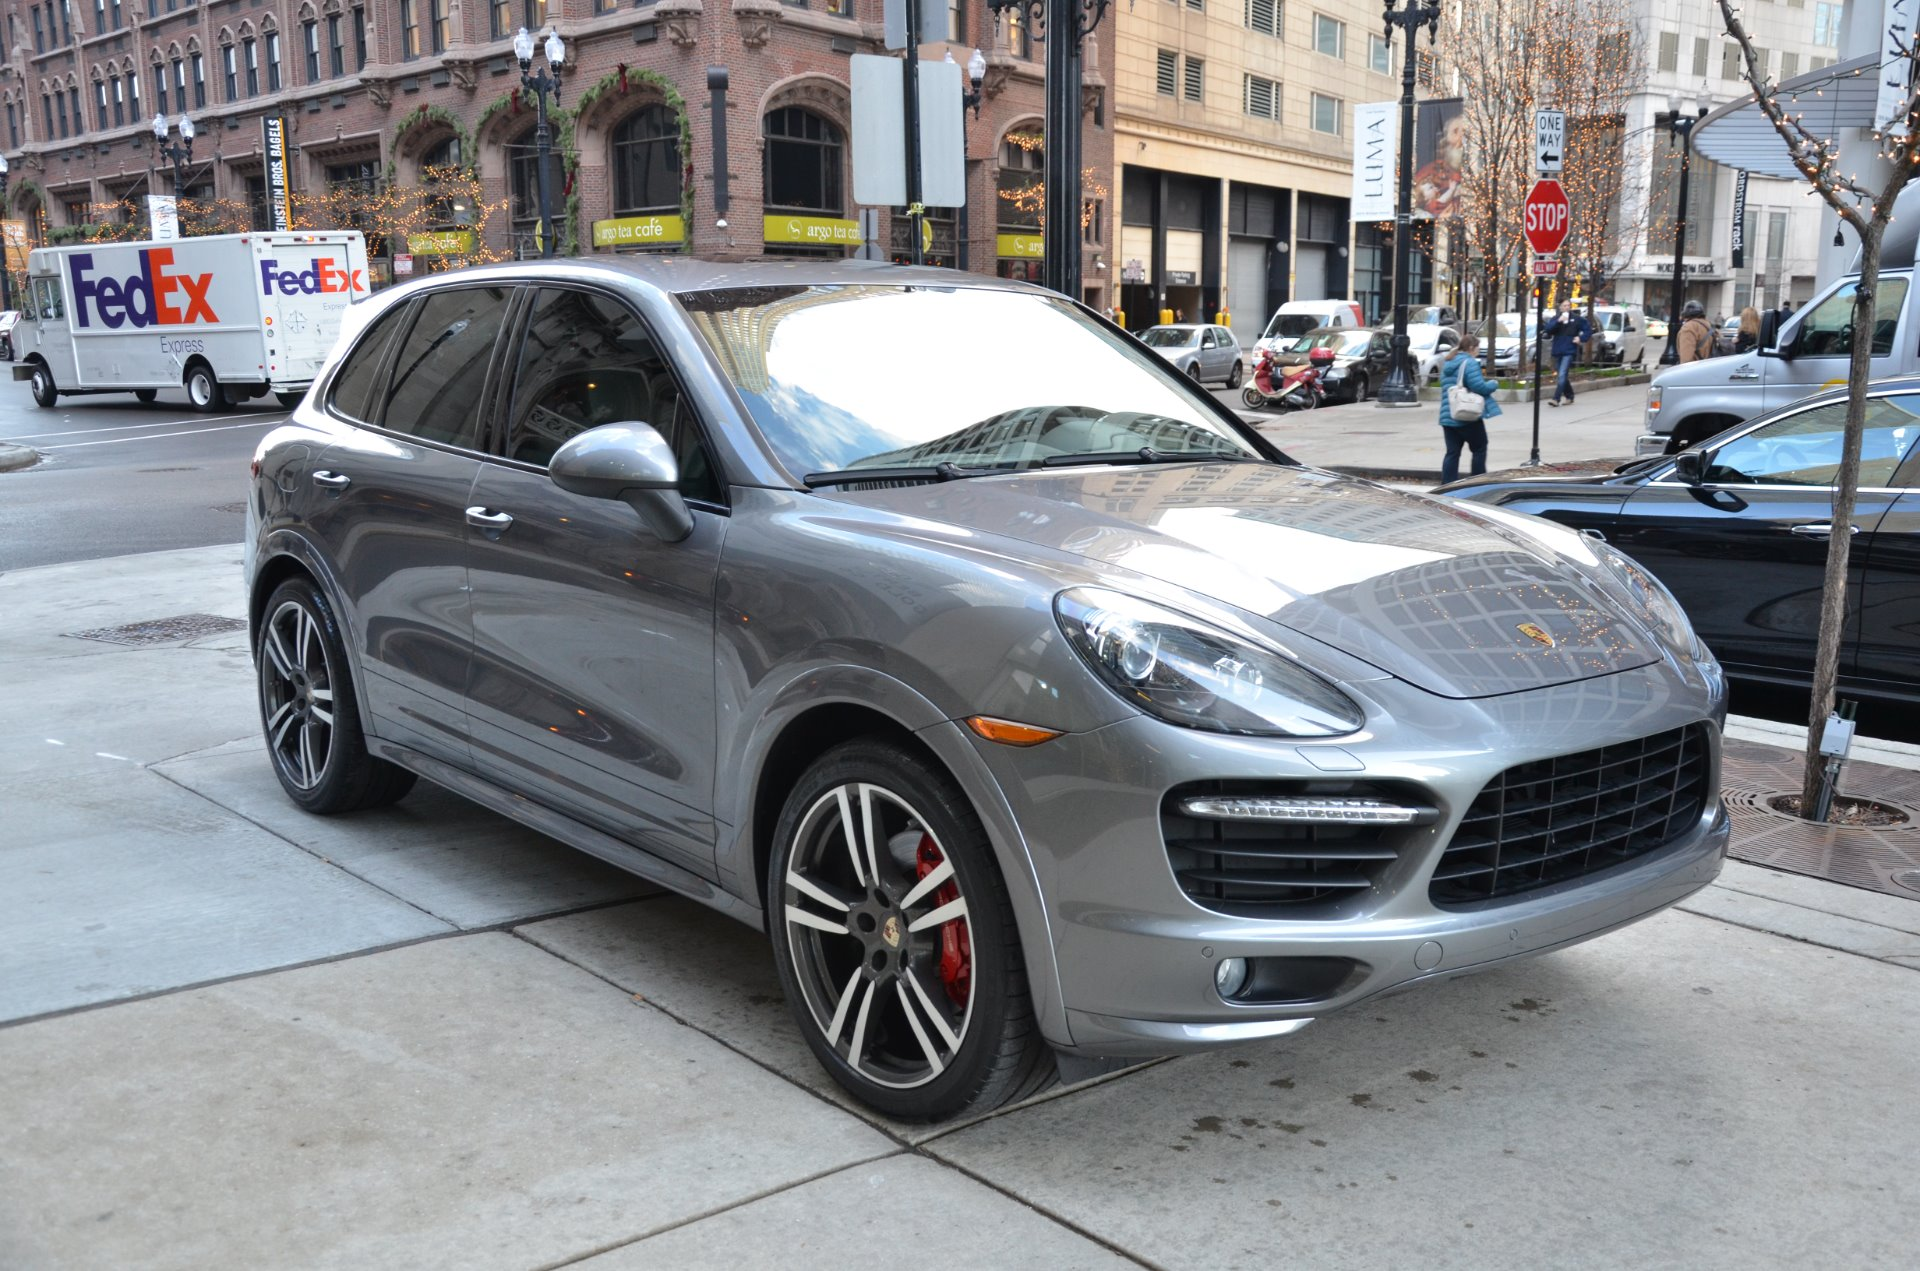 2013 porsche cayenne gts stock 70266 for sale near chicago il il porsche dealer. Black Bedroom Furniture Sets. Home Design Ideas